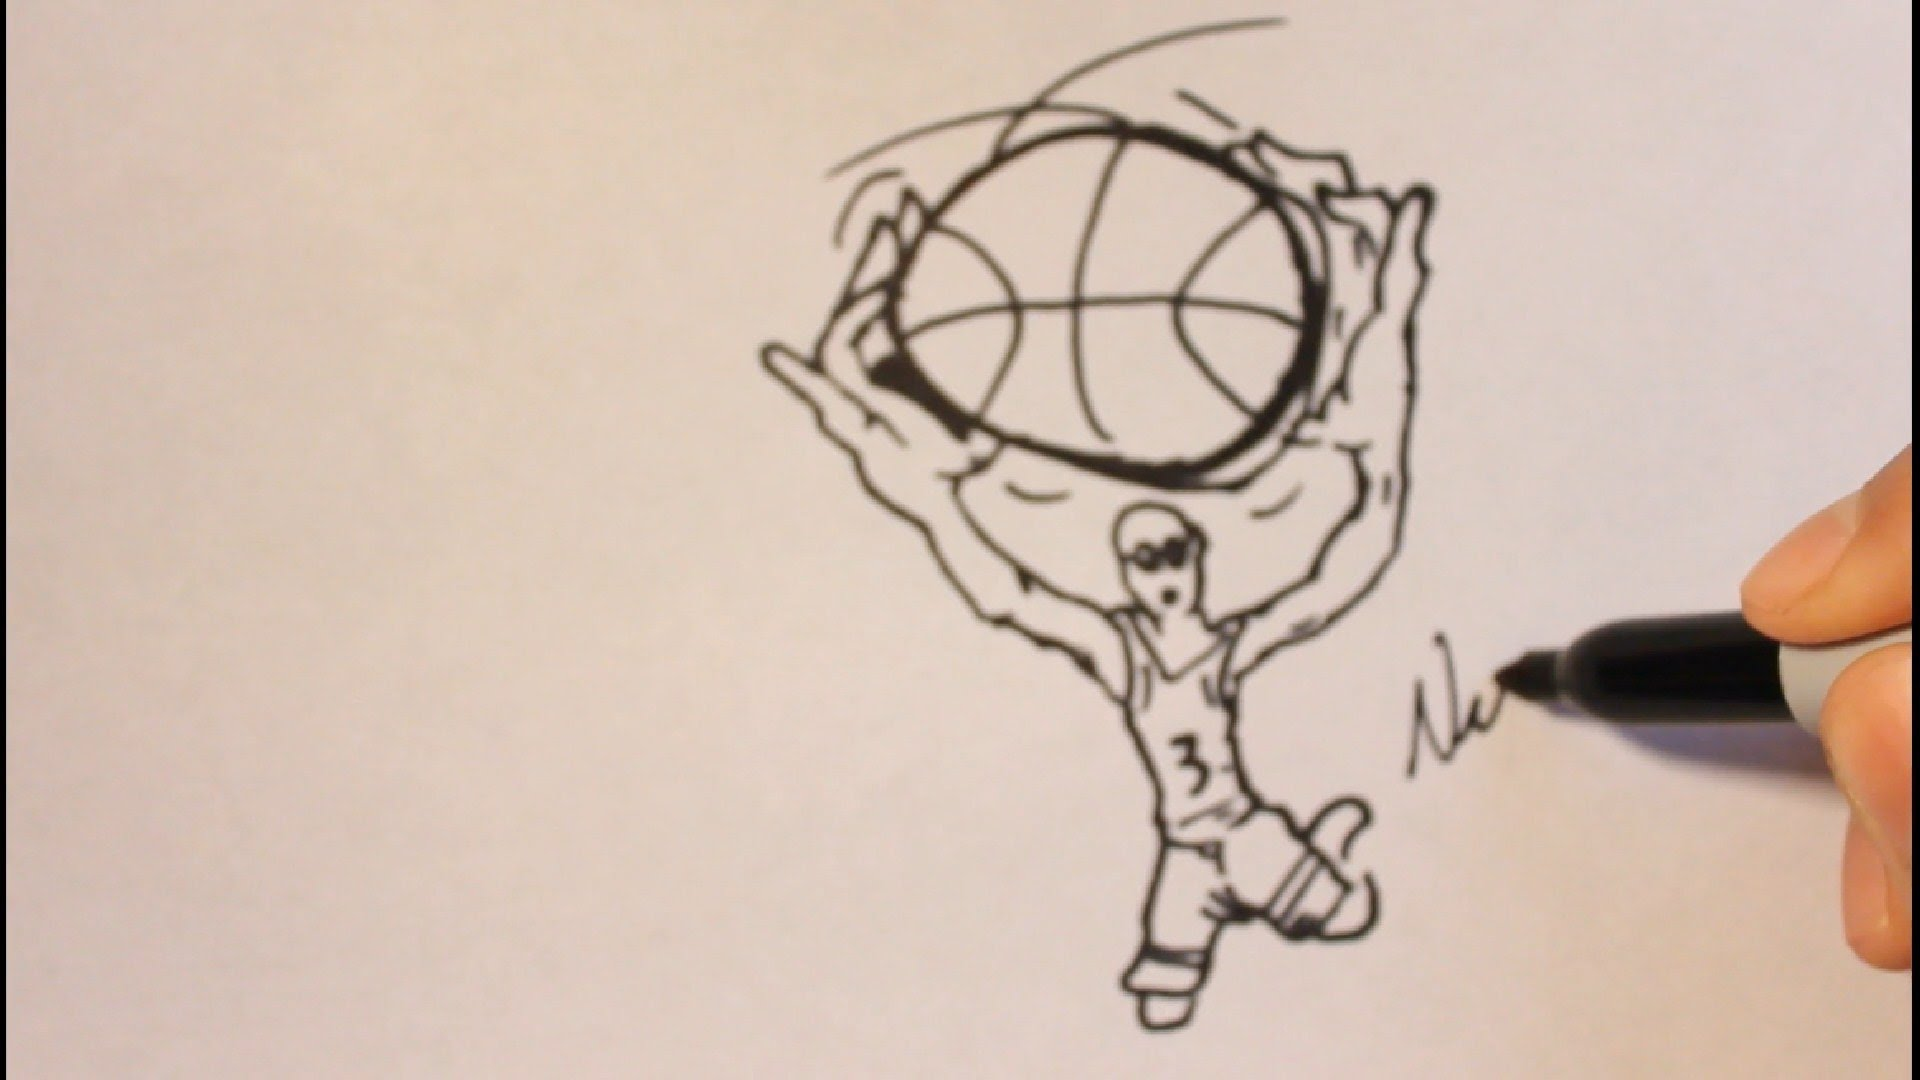 1920x1080 How To Draw A Cartoon Basketball Player Step By Step Easy Tutorial